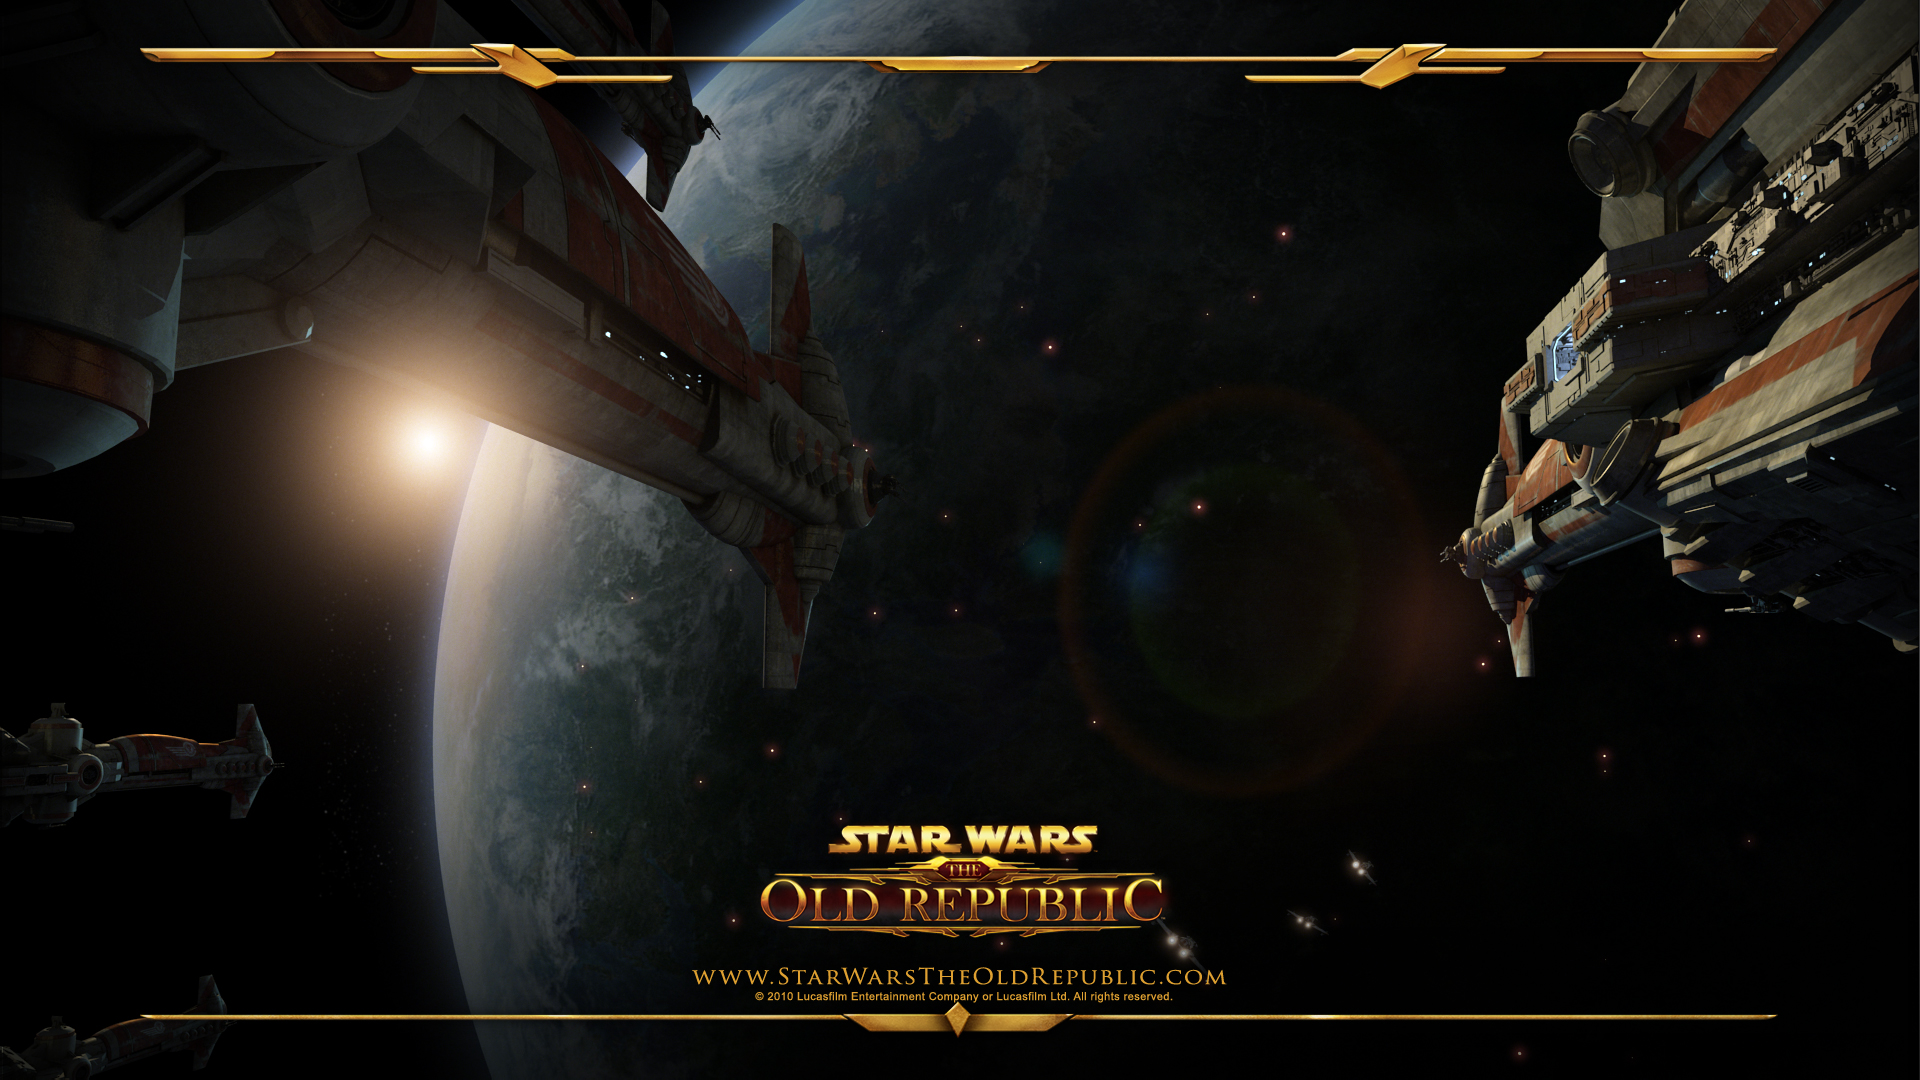 Star Wars The Old Republic Desktop 1920x1080 Wallpaper Teahub Io